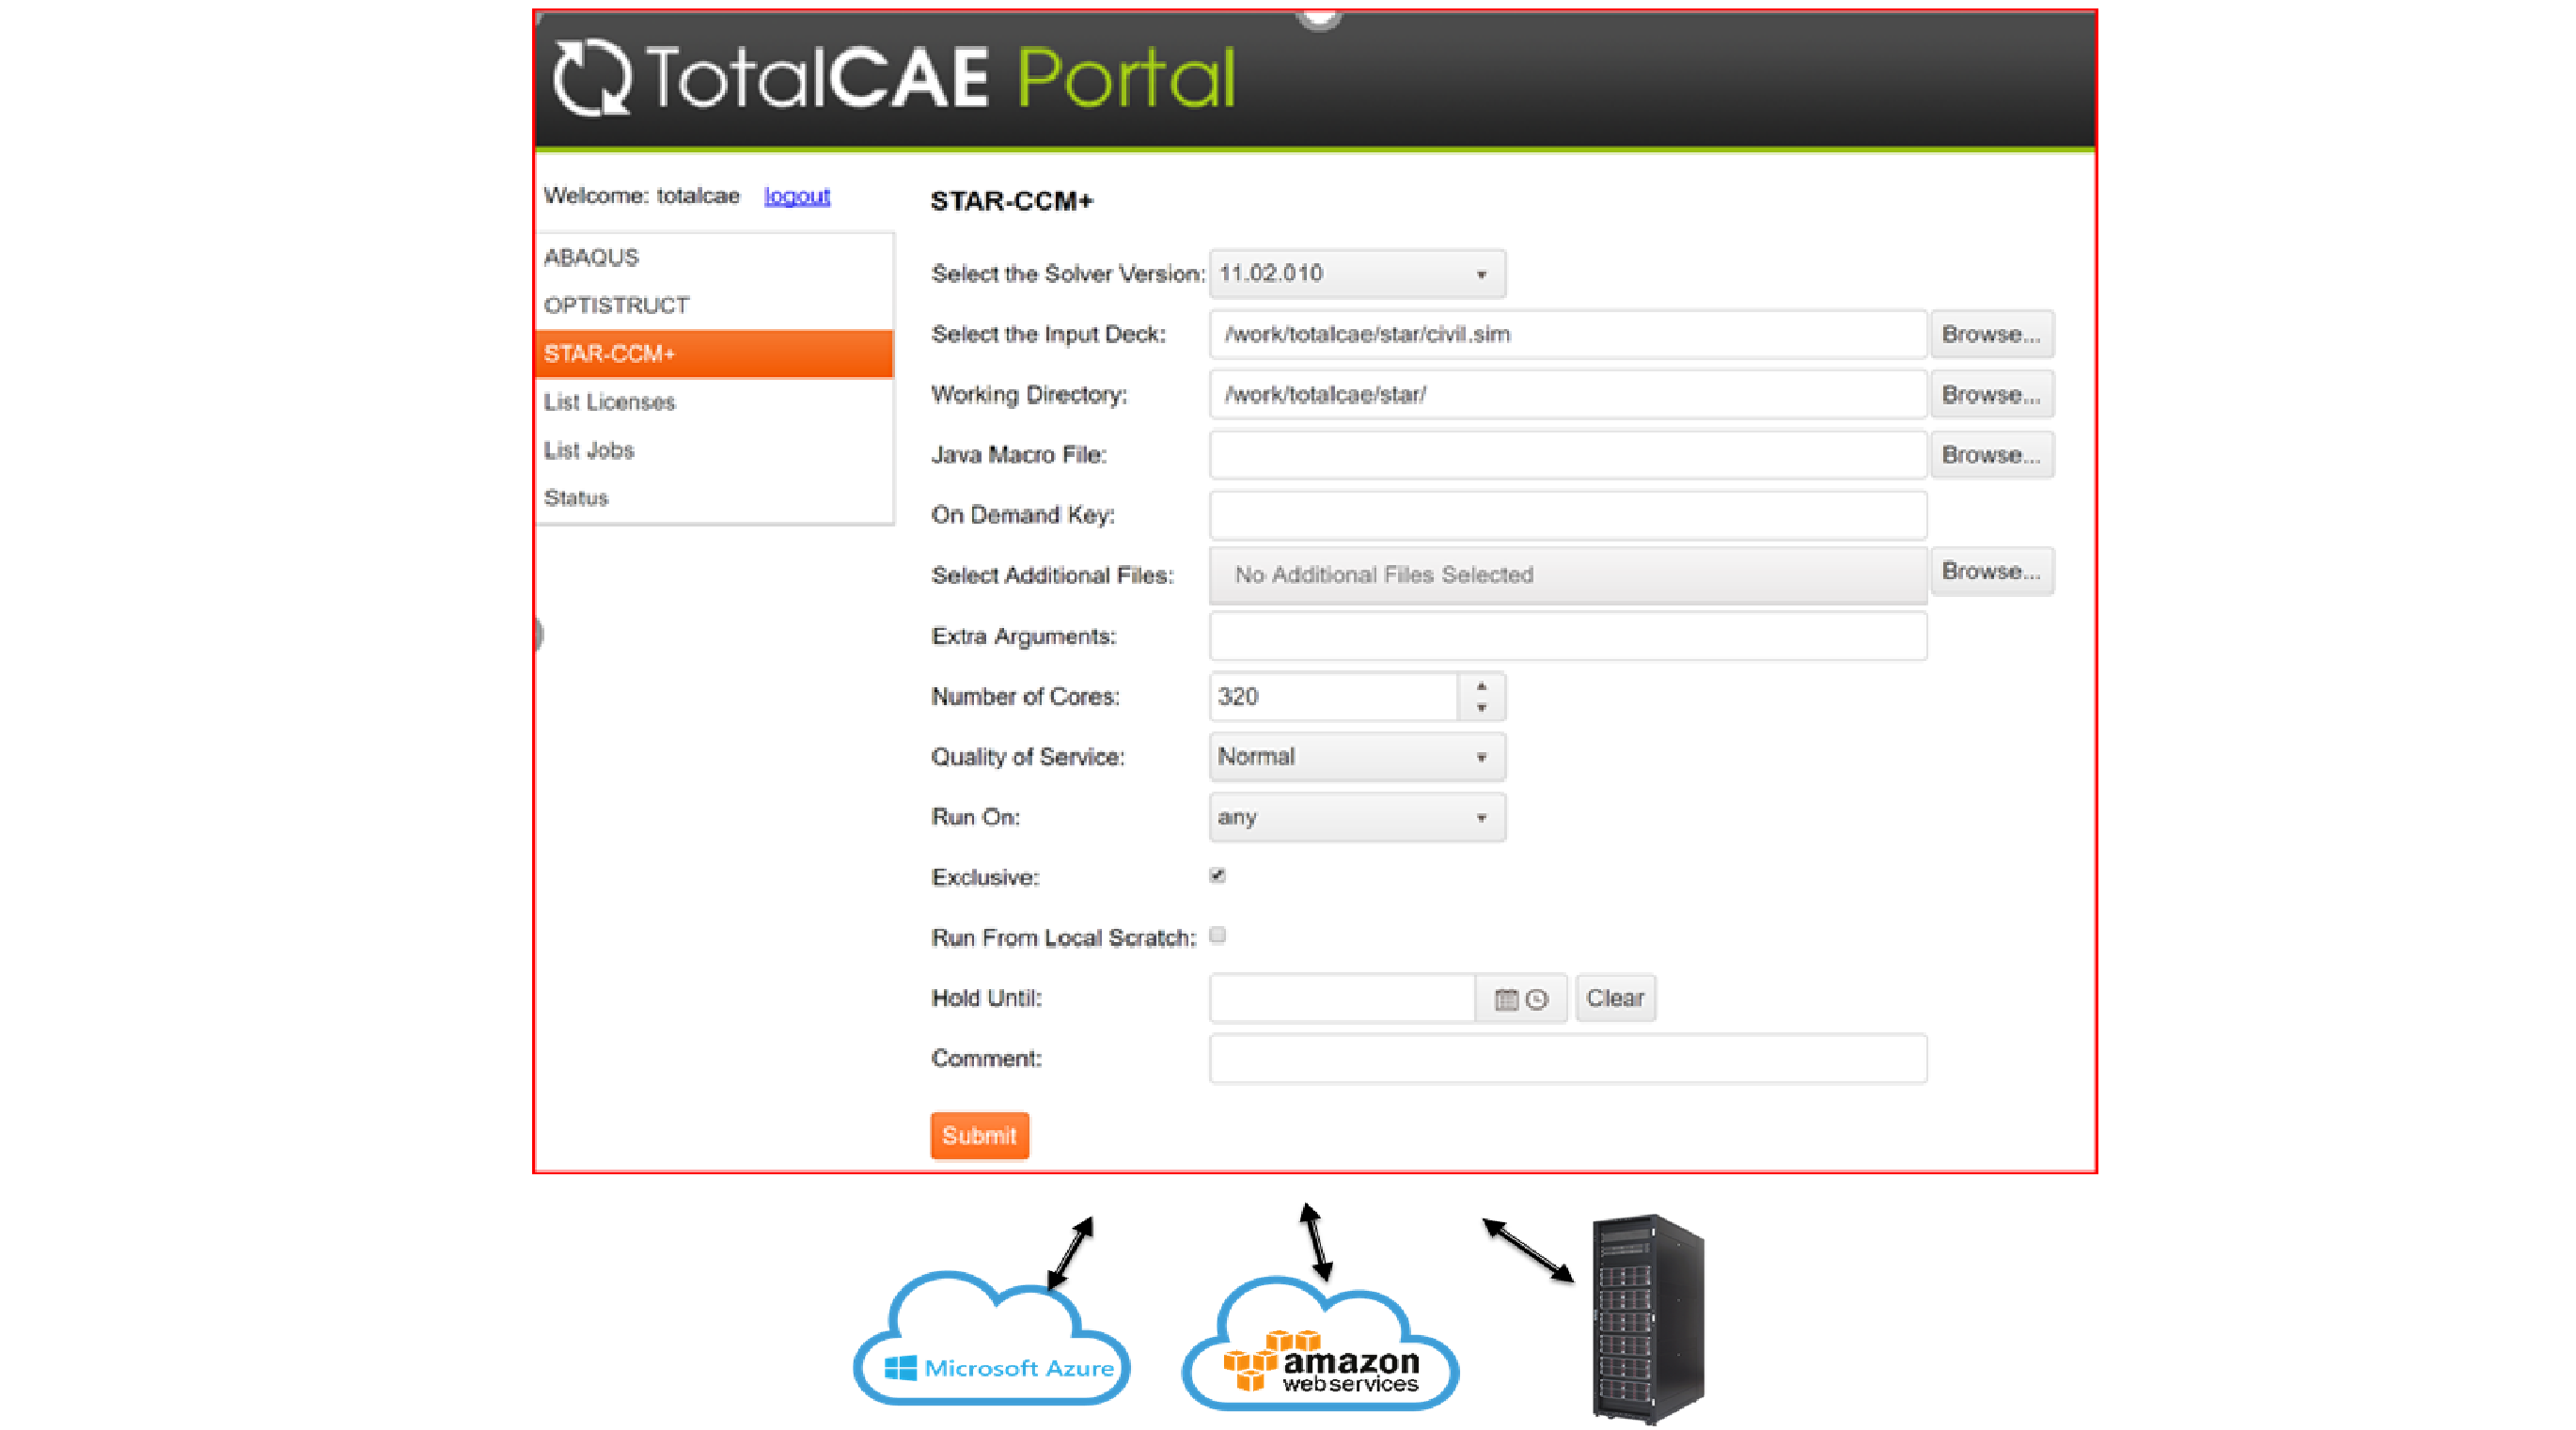 TotalCAE Supports Multiple Public Clouds and On Premise Clouds with a Single Interface